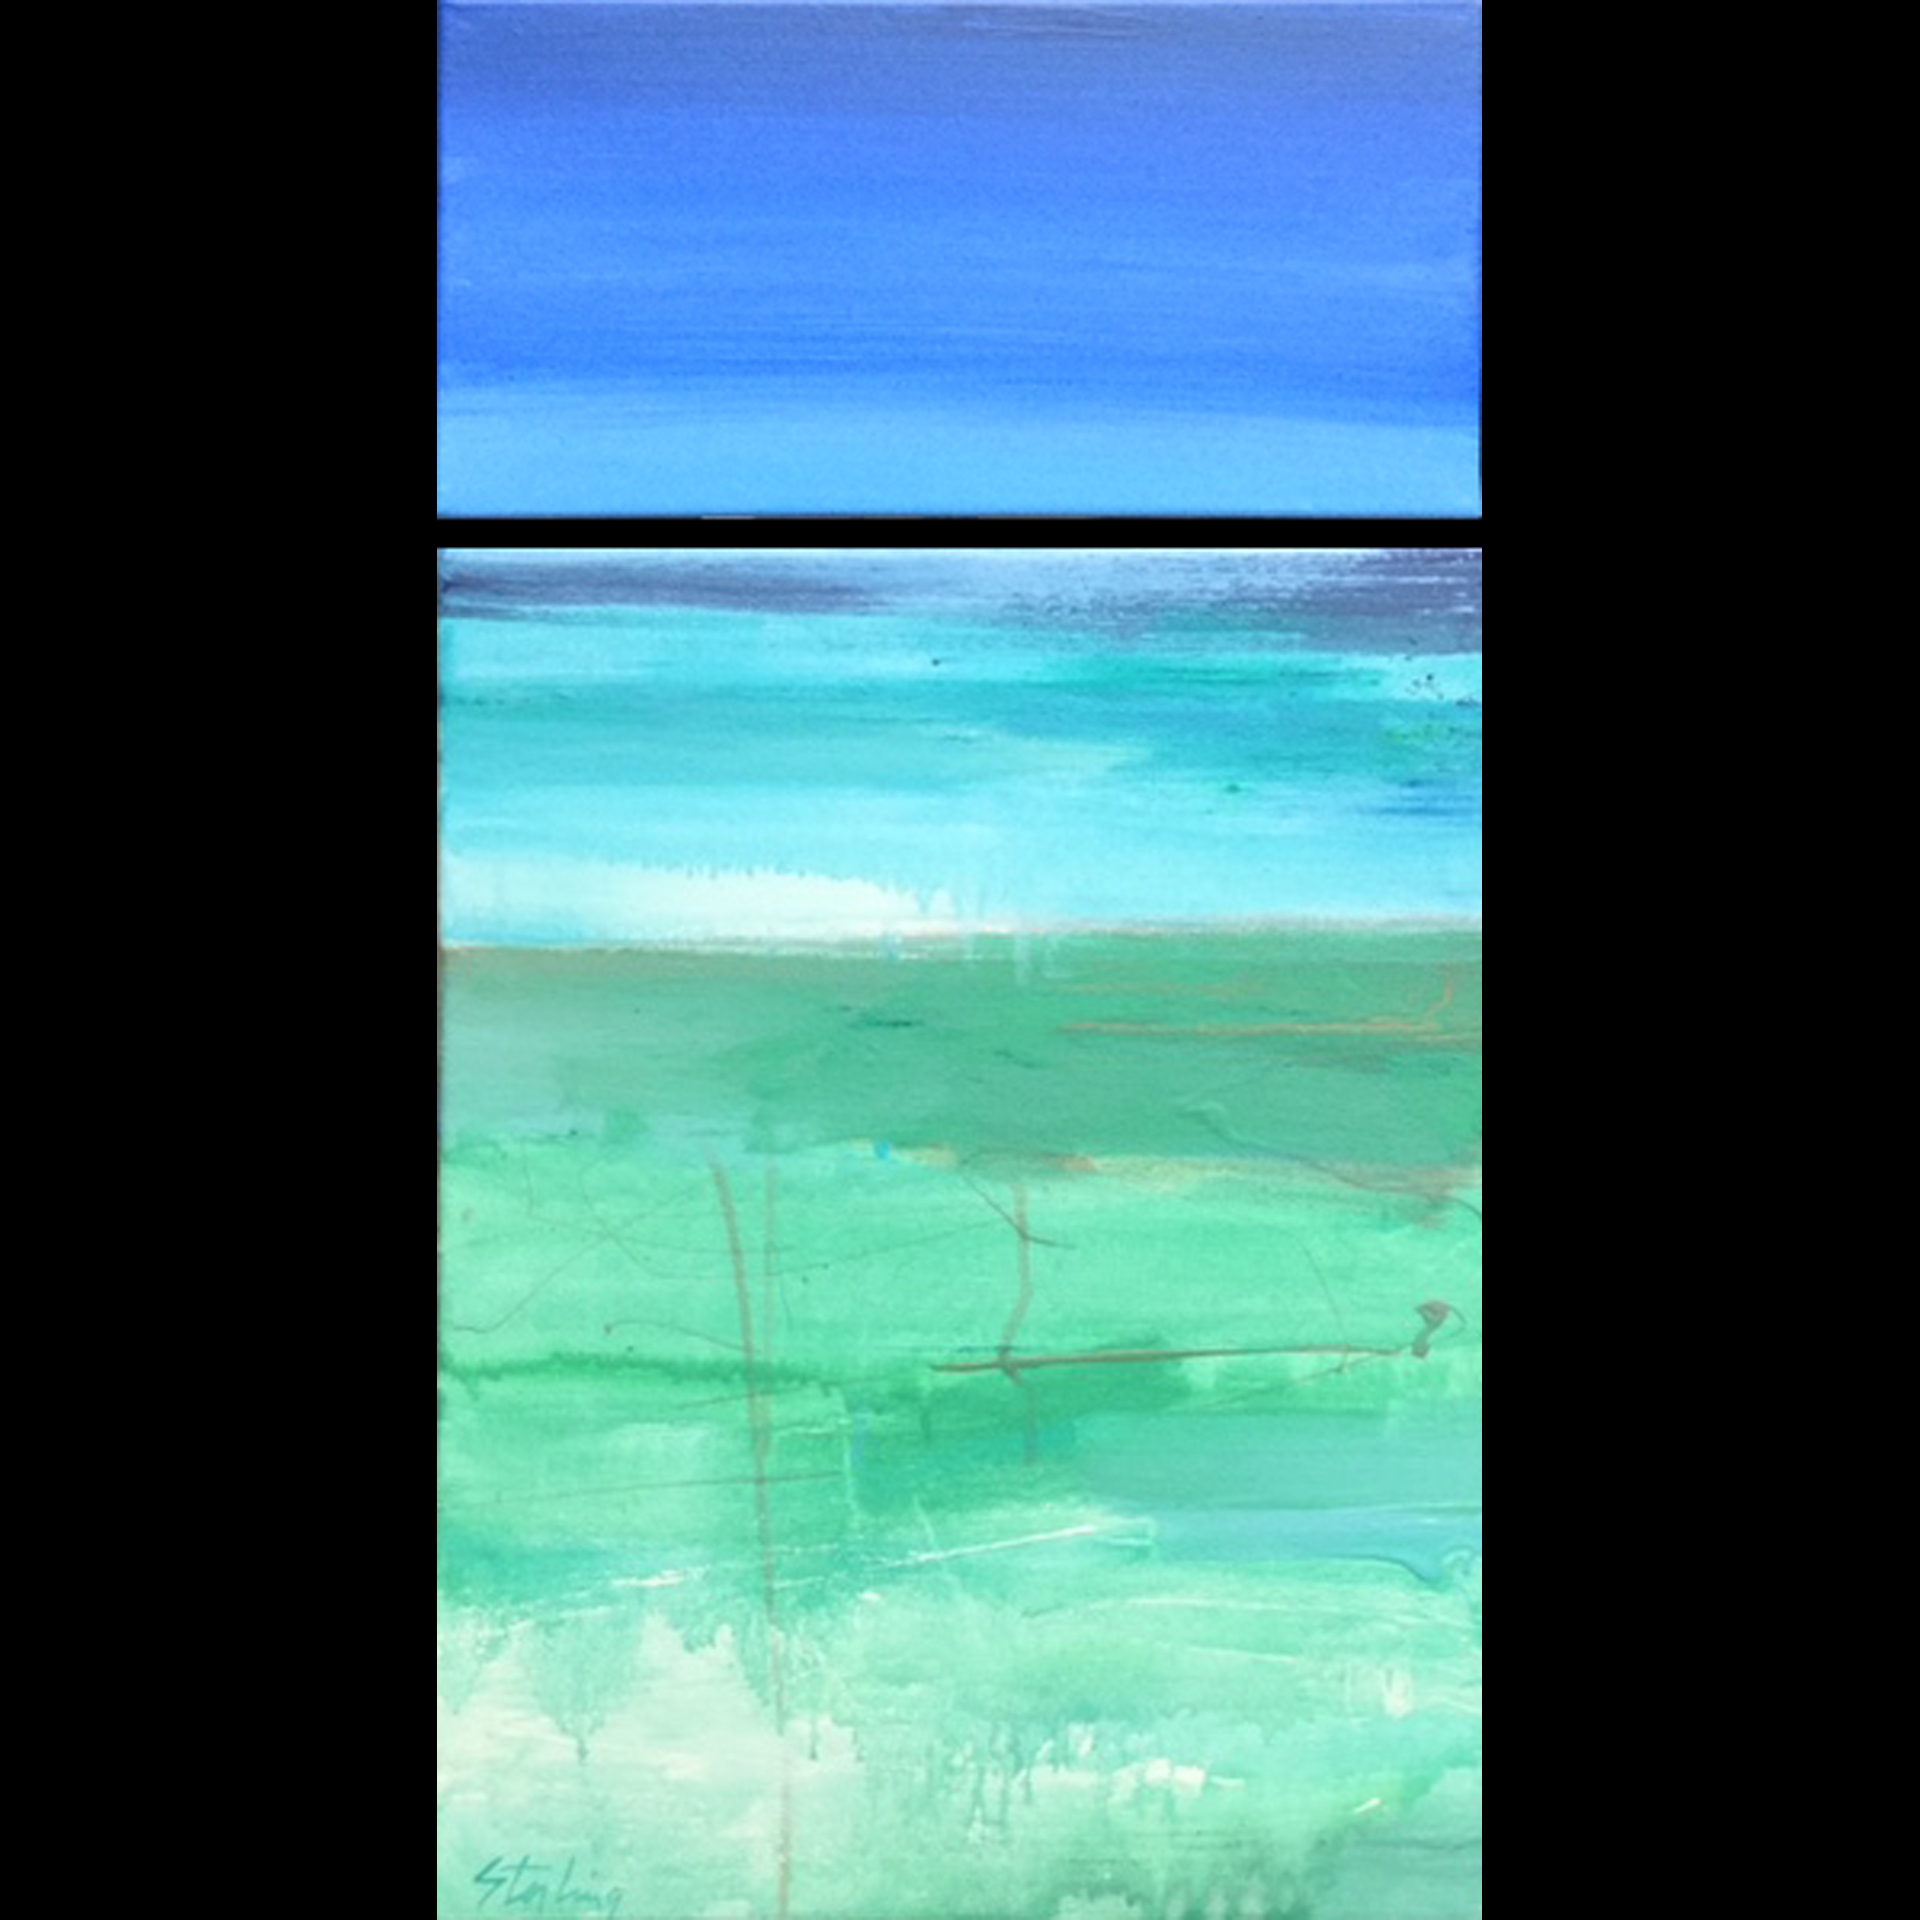 SEA LEVEL acrylic on canvas diptych 14x26 $240